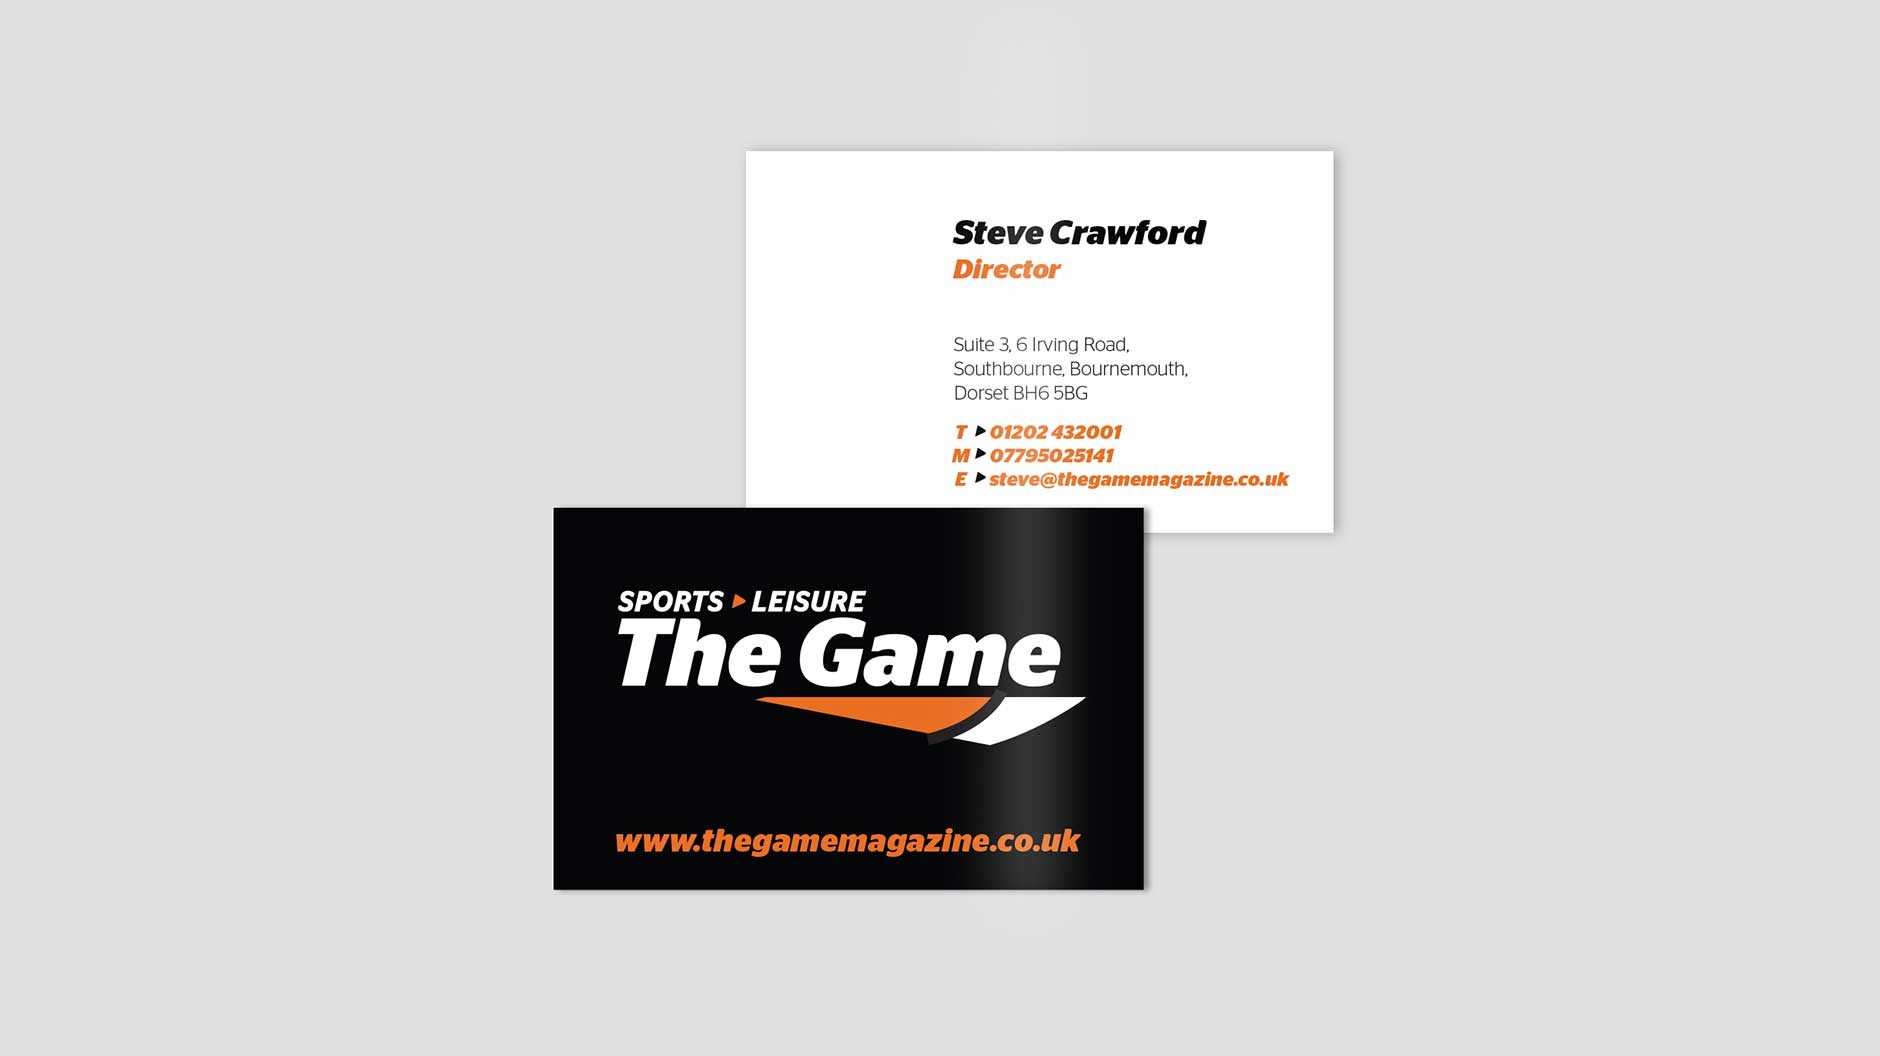 The Game Magazine business cards